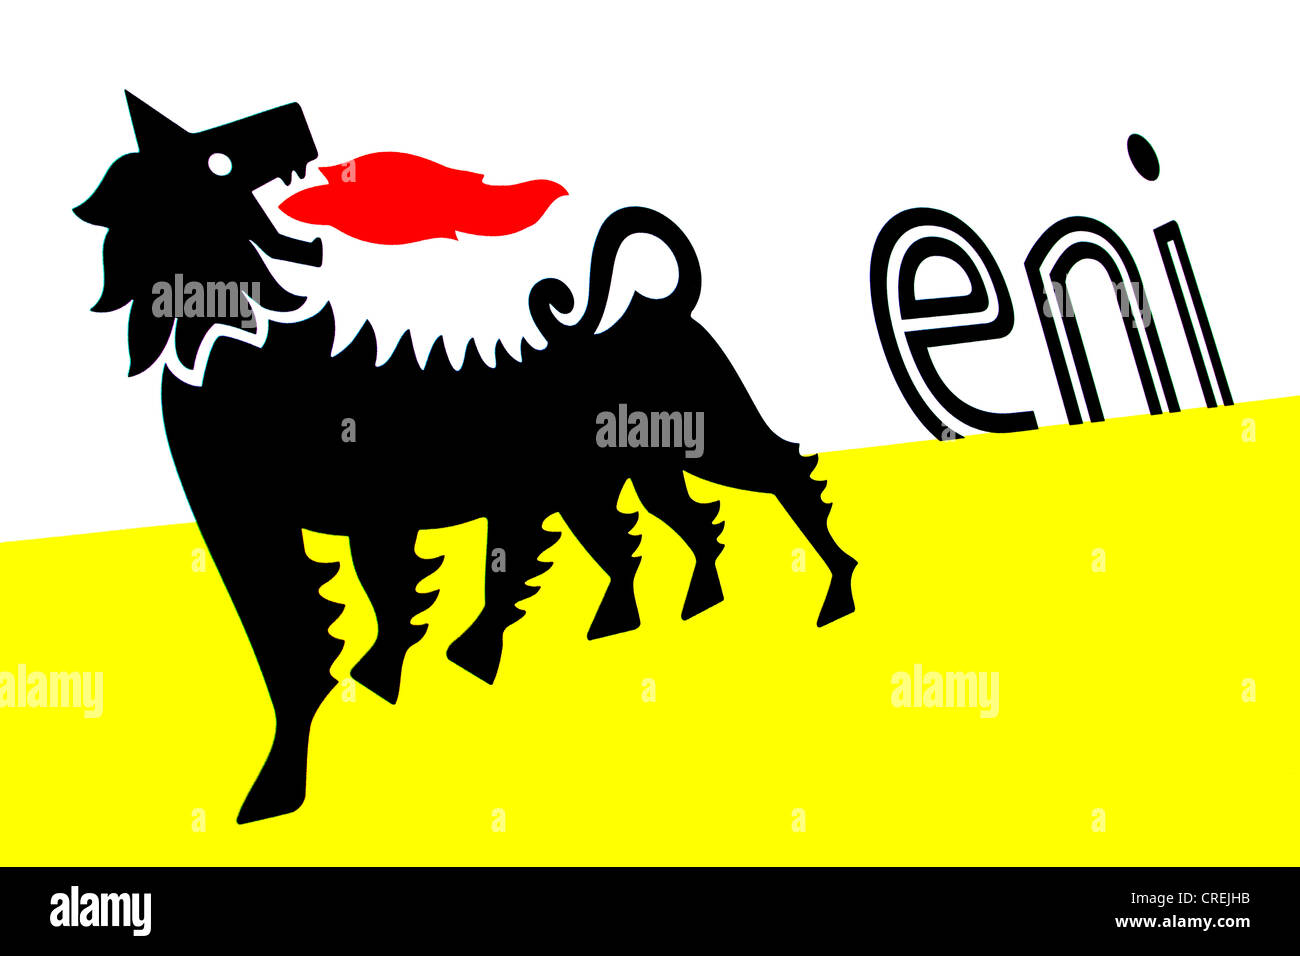 Logo of Eni, an Italian multinational oil and gas company, largest company of Italy with a chain of filling stations - Stock Image